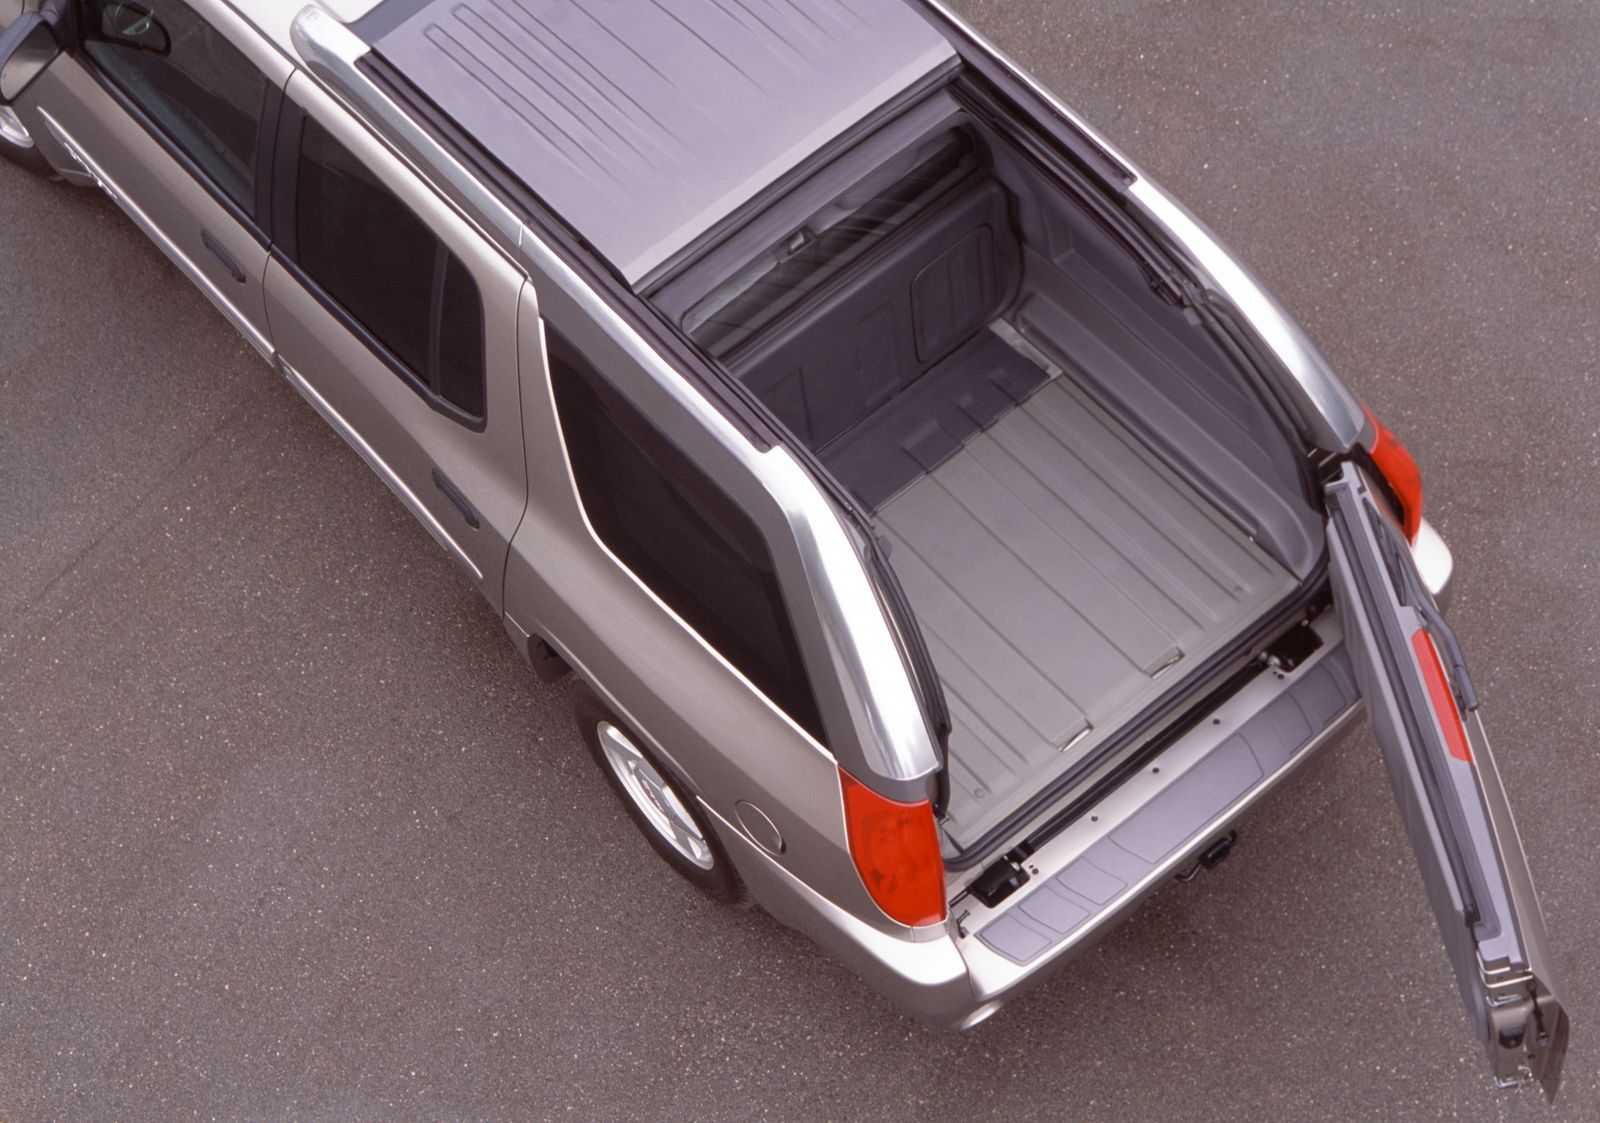 Open Sesame Gmc Envoy Xuv Gmc Envoy Xuv Gmc Envoy Ford Mustang Suv